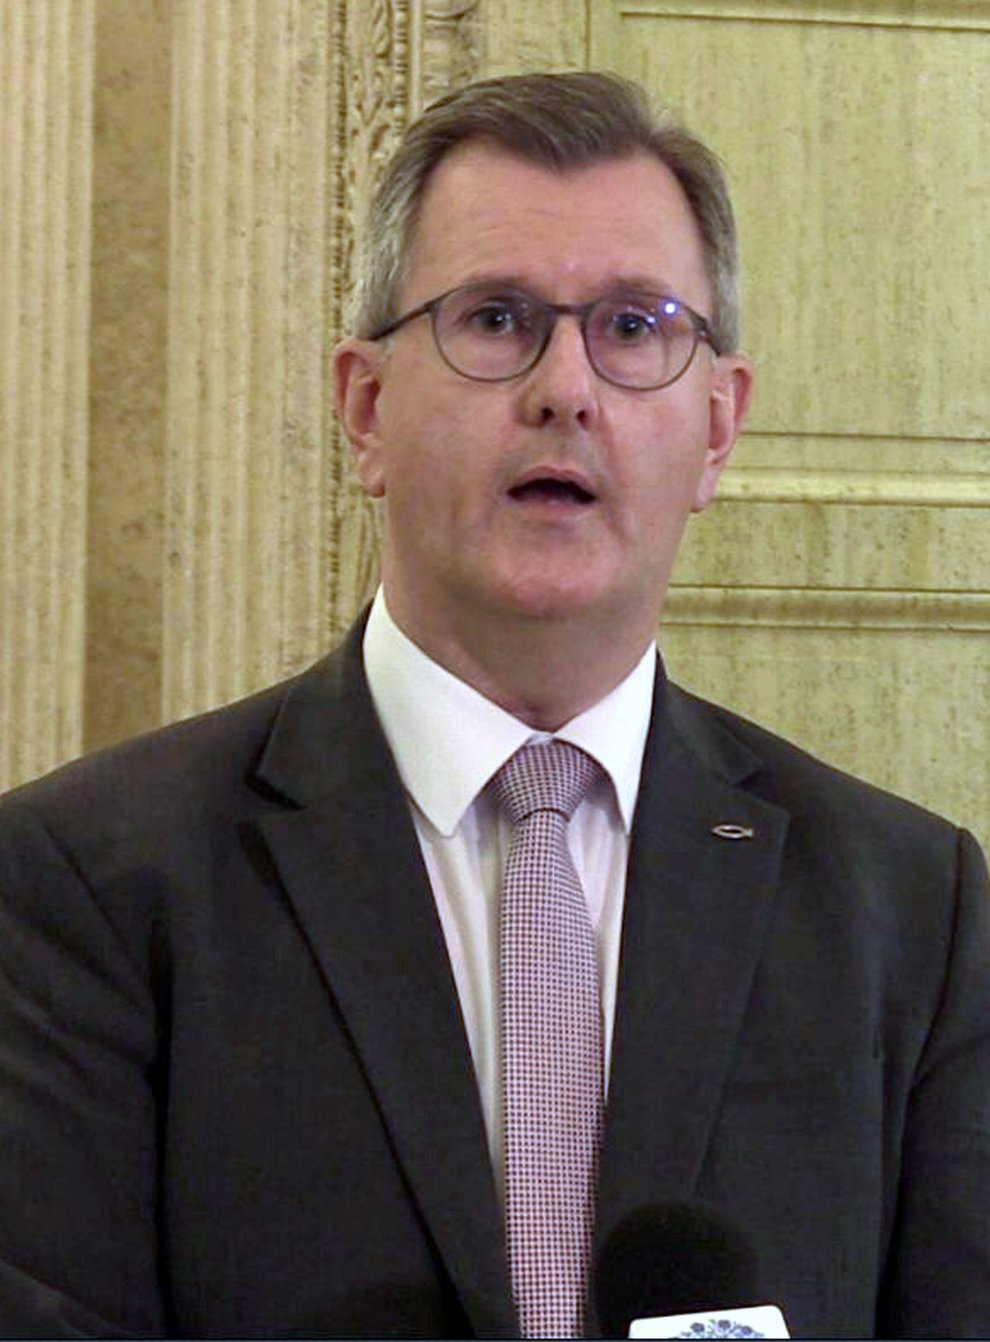 DUP leader Sir Jeffrey Donaldson speaks to the media in the Great Hall of Parliament Buildings, Belfast. Picture date: Thursday September 16, 2021.